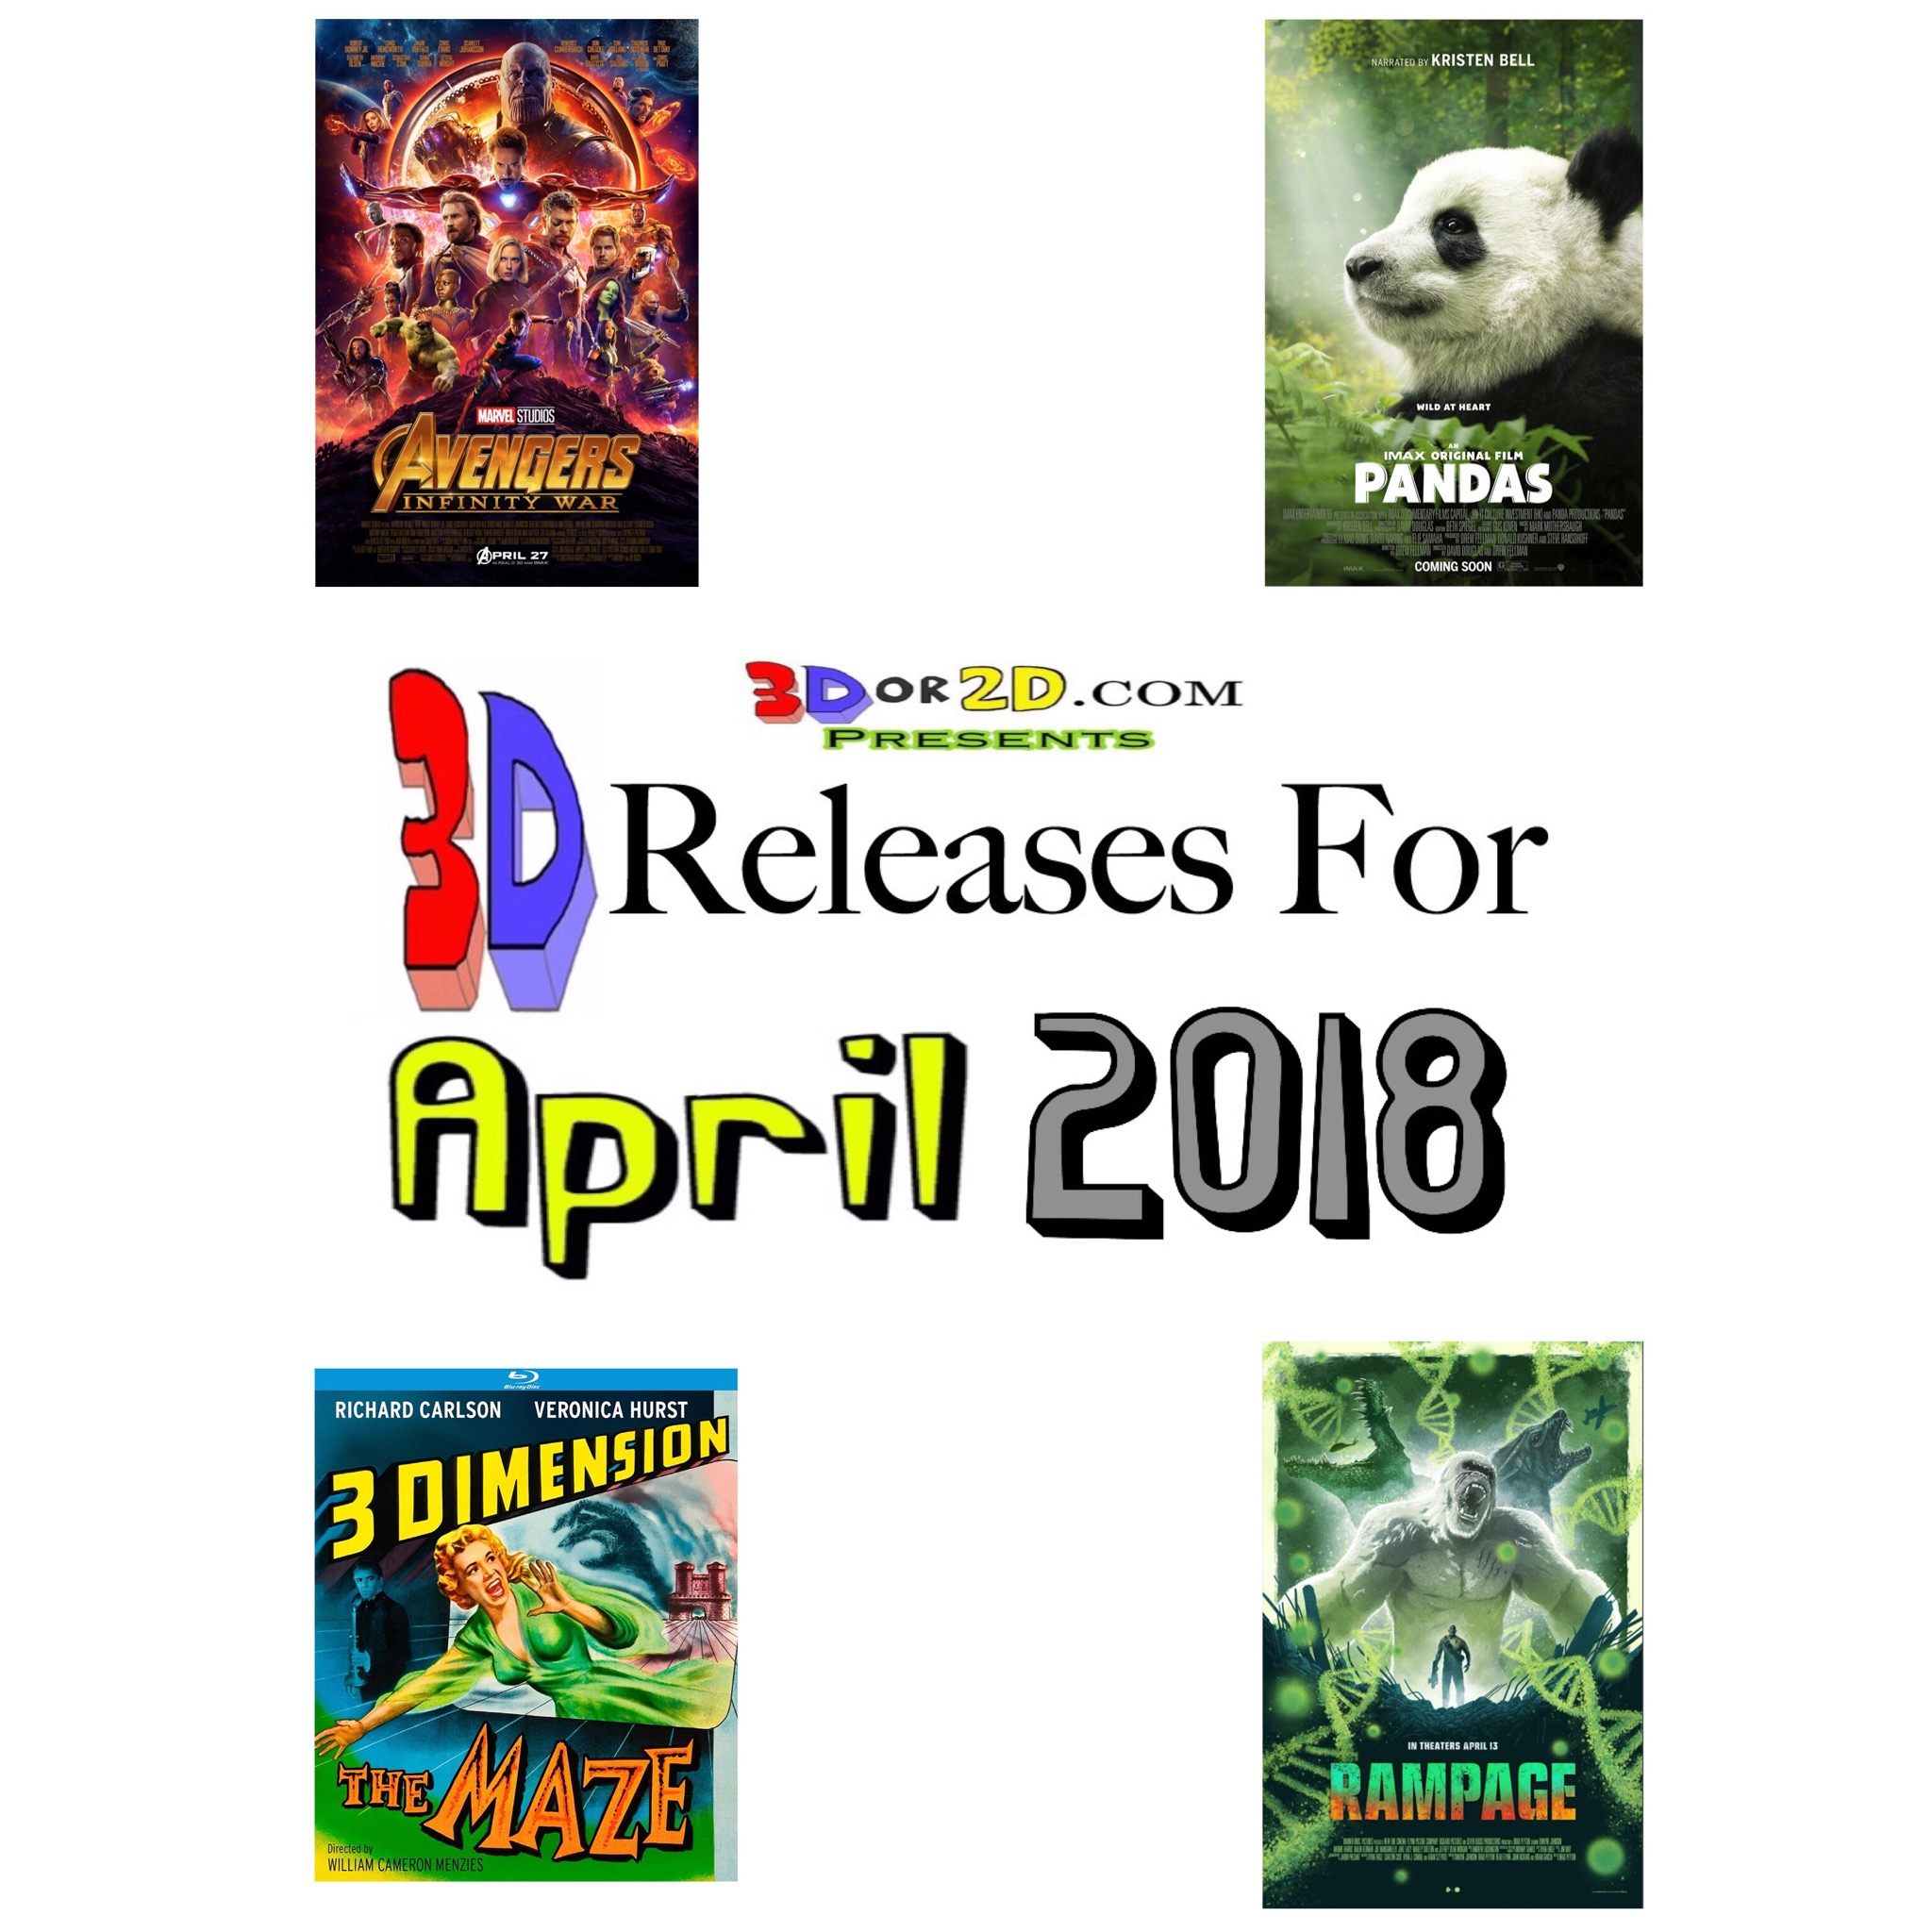 3D Releases for April 2018.JPG